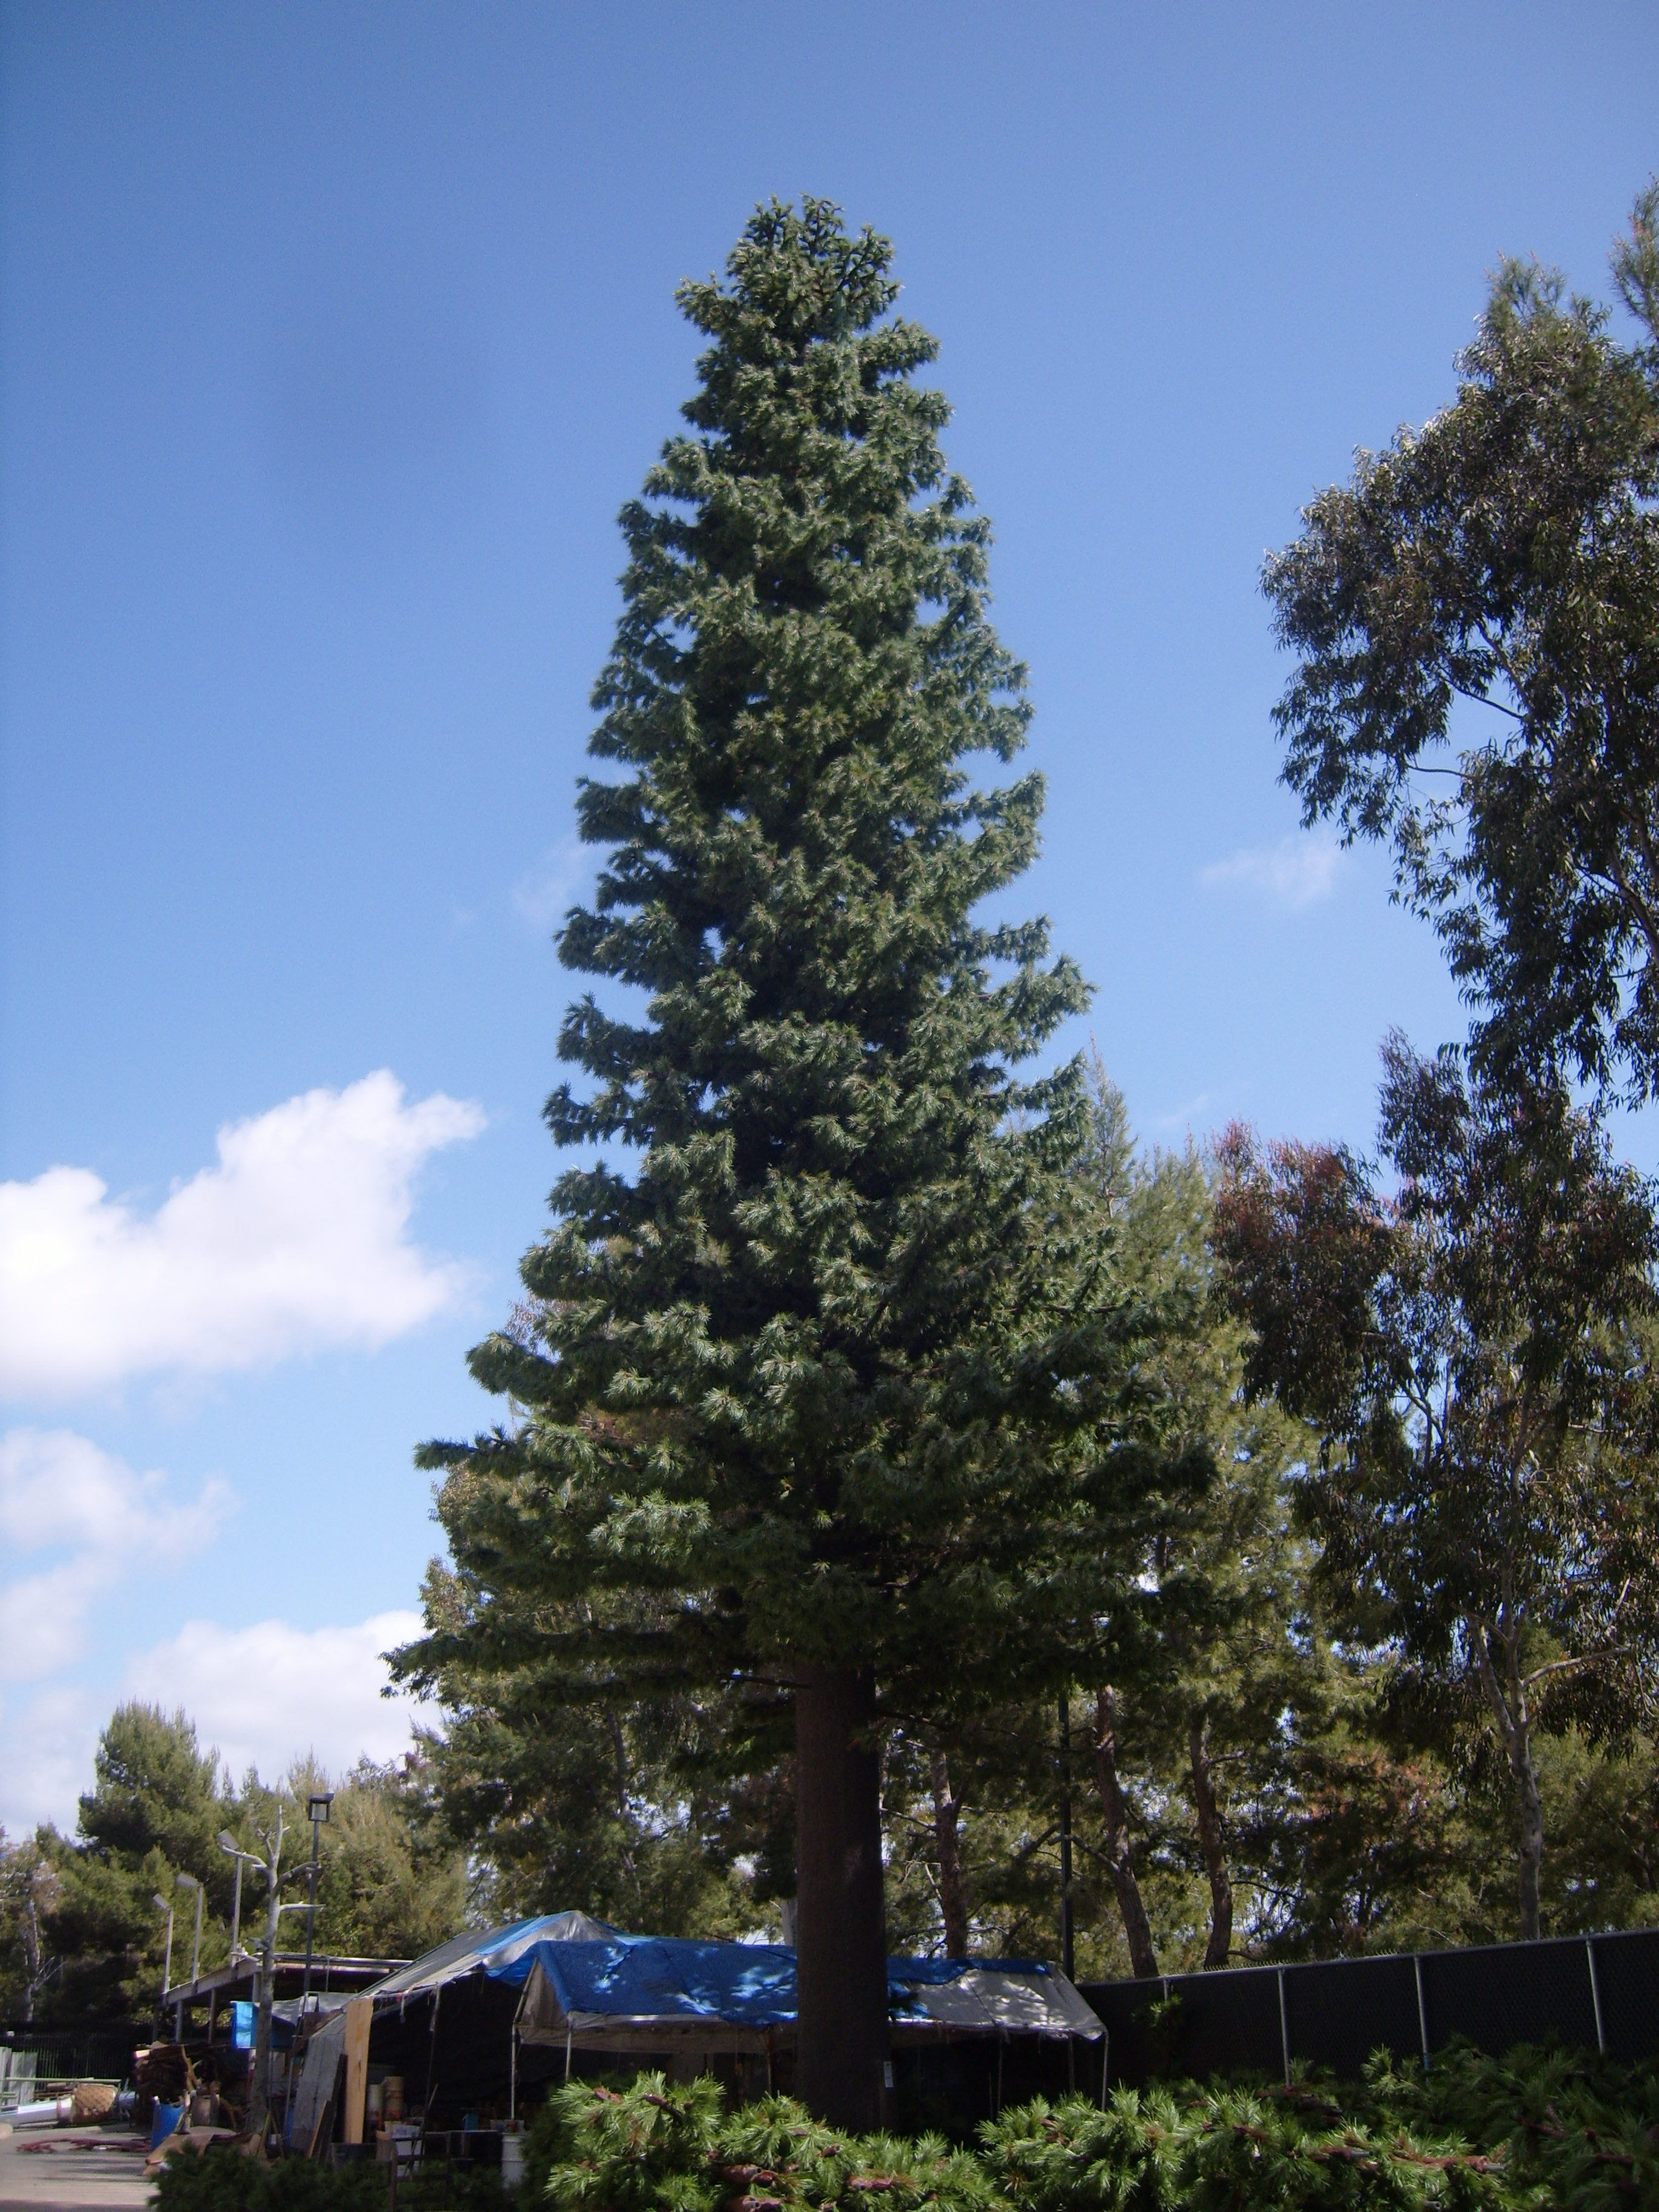 This is one of our Cell Tower Concealment Pine Trees newly